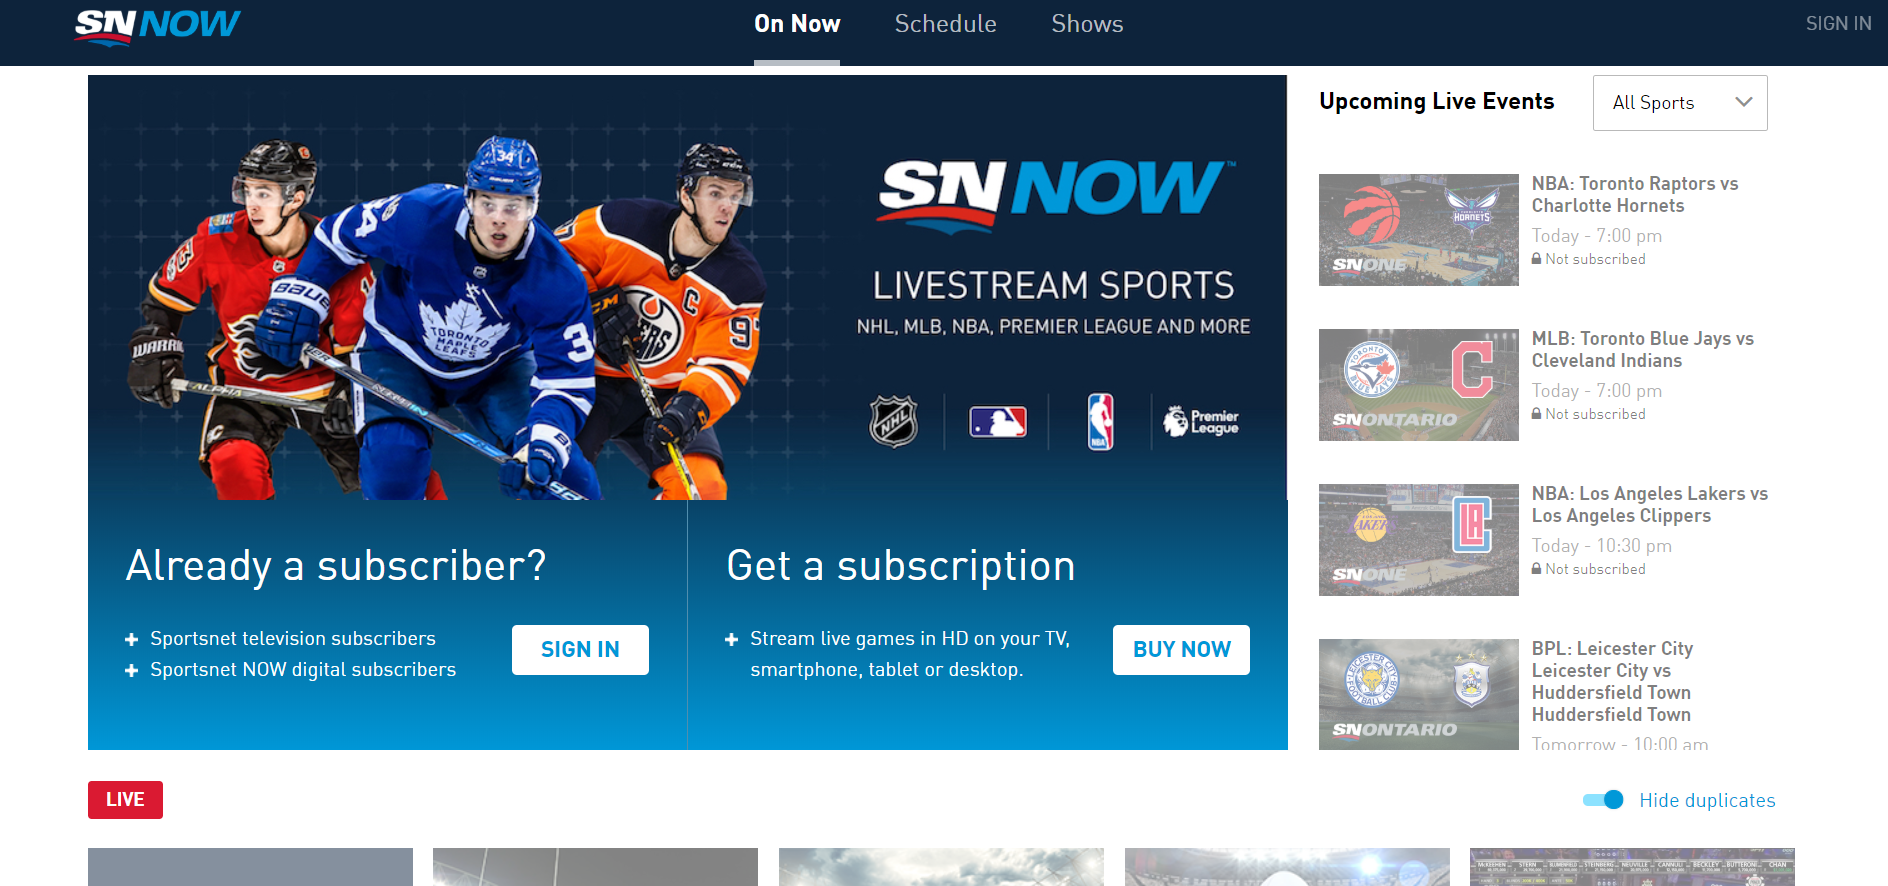 Stuck? How to successfully sign in to Sportsnet NOW